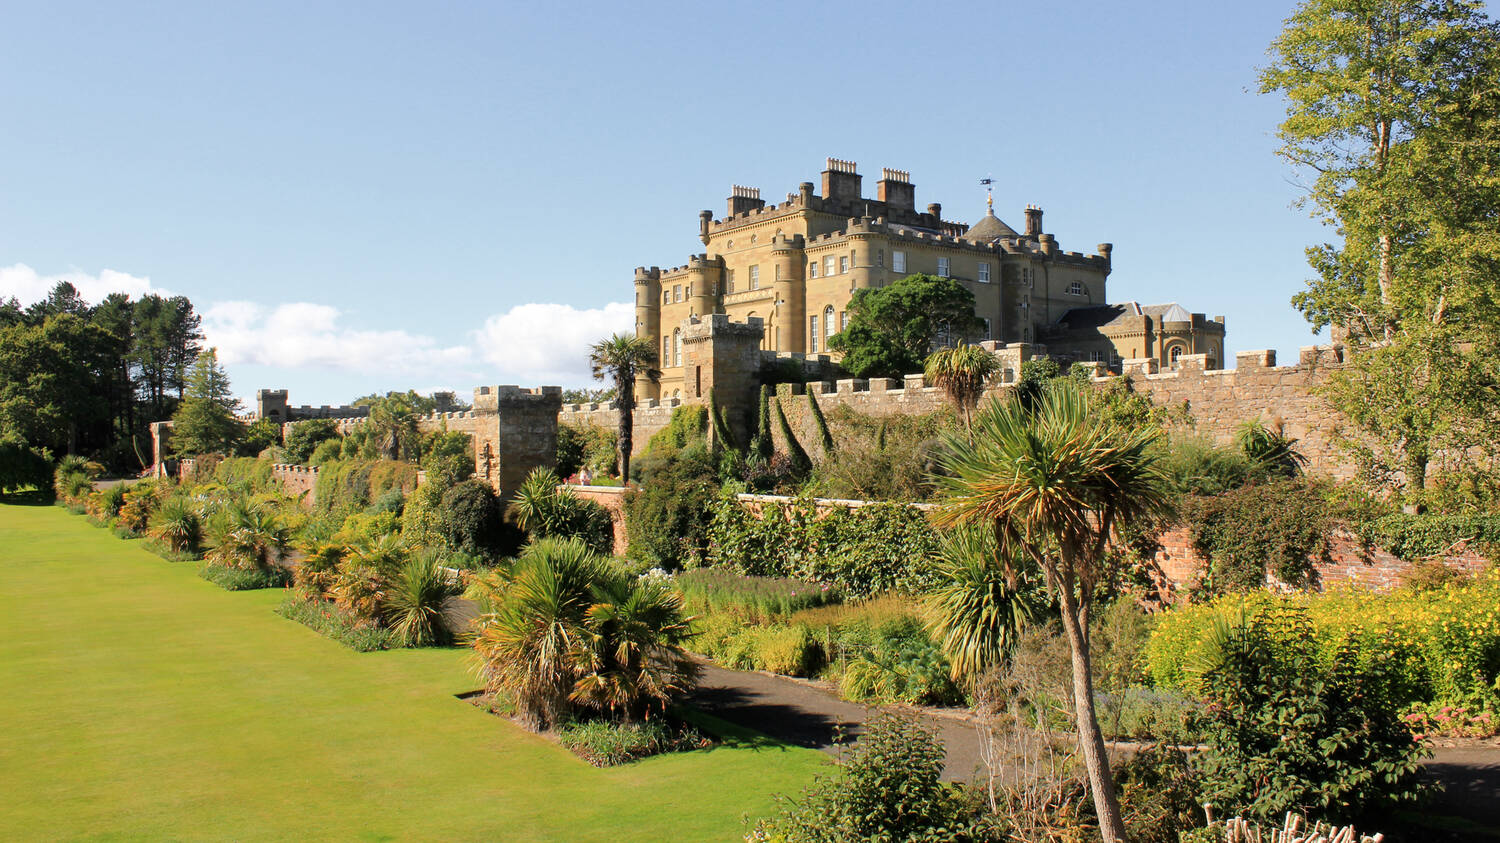 Culzean Castle seen from the Fountain Court. The sky is blue and the lawn in the foreground is manicured. Various palm trees line the path in the garden.